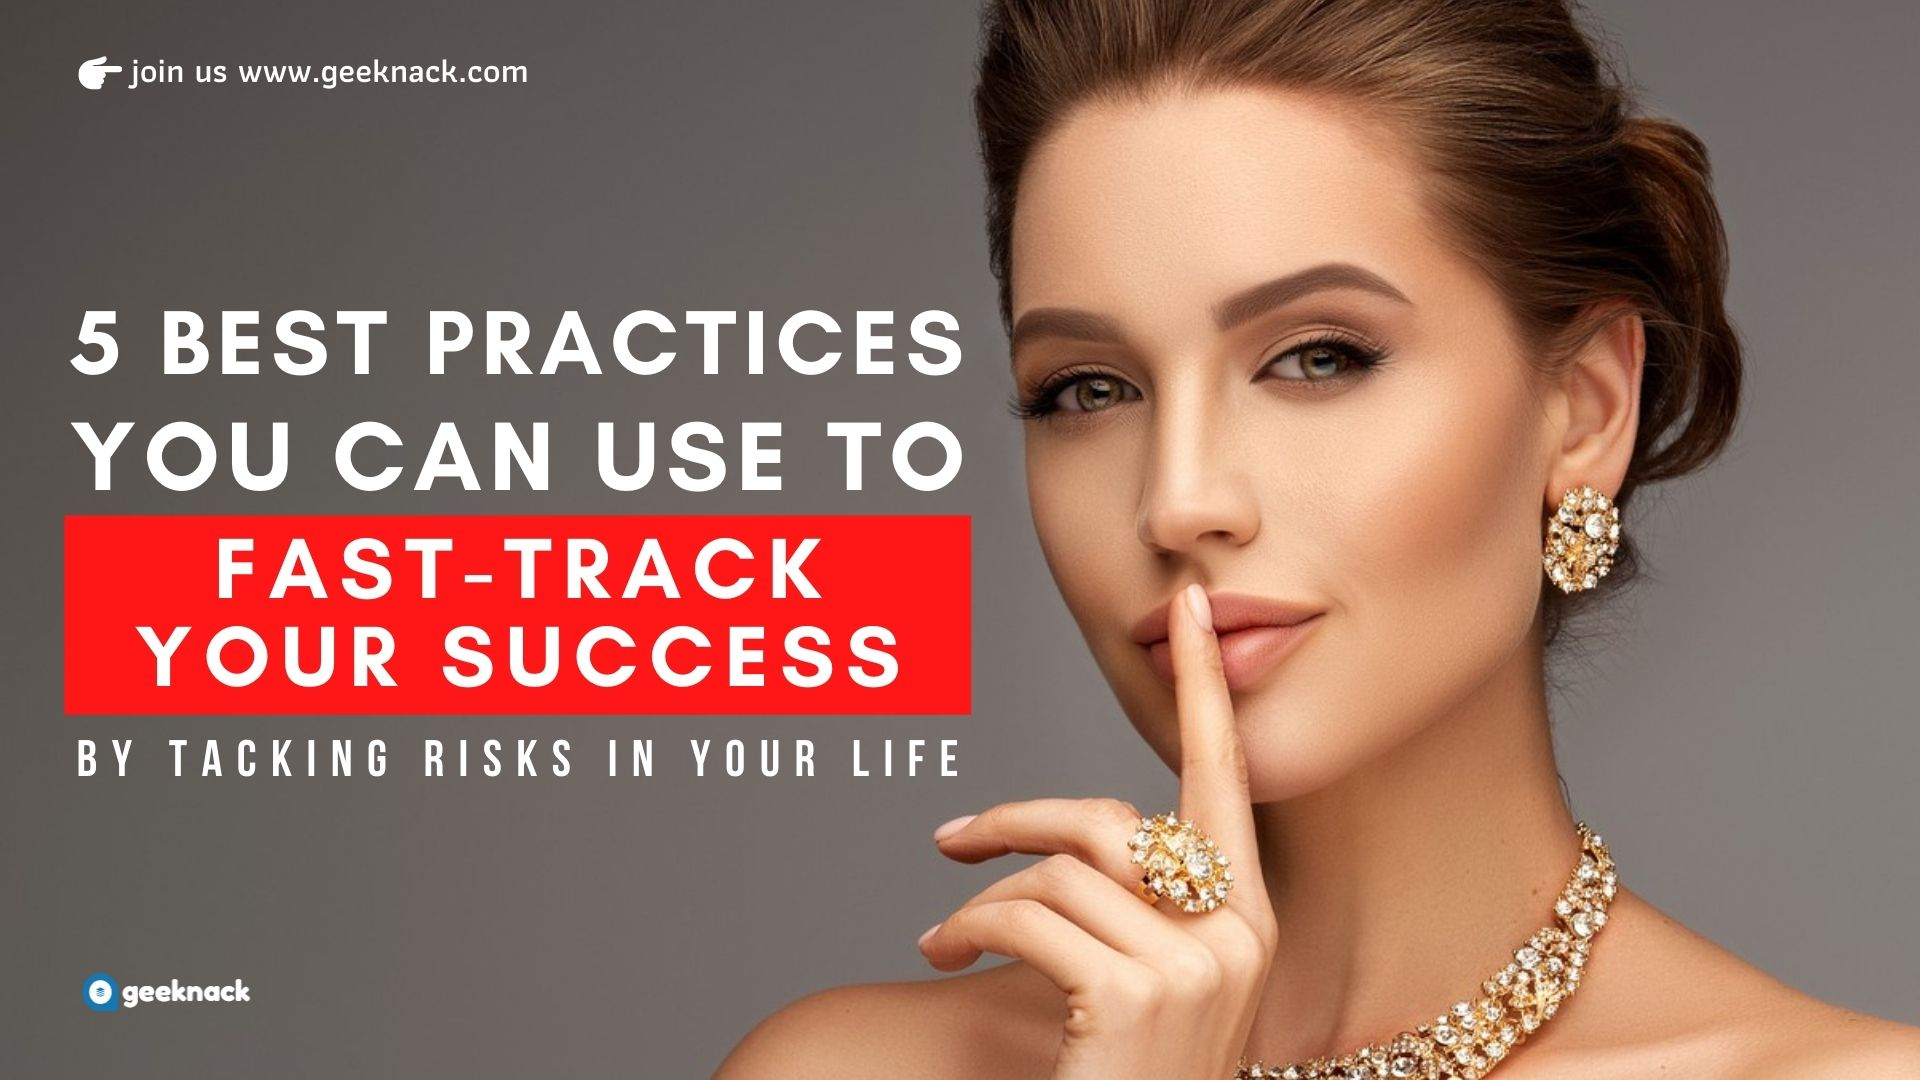 5 Best Practices You Can Use To Fast-Track Your Success By Taking Smart Risks In Your Life